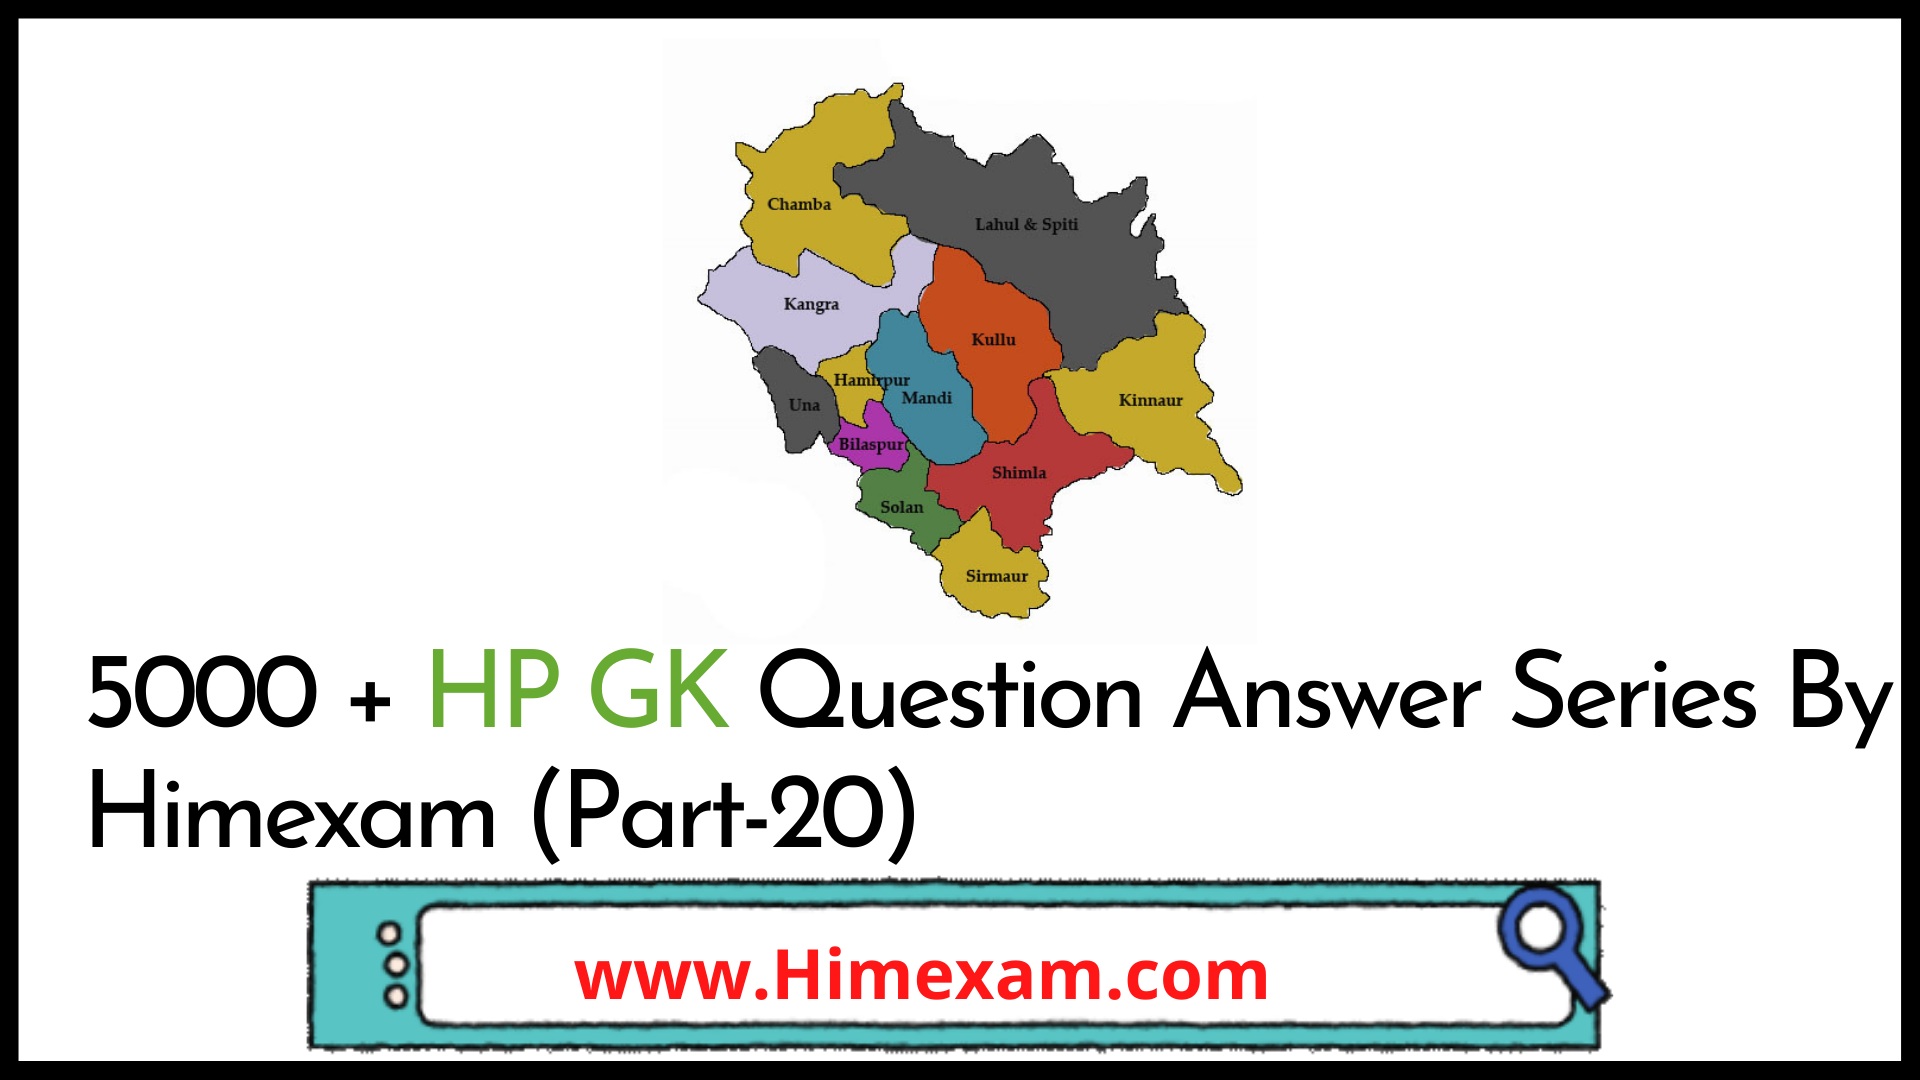 5000 + HP GK Question Answer Series By Himexam (Part-20)